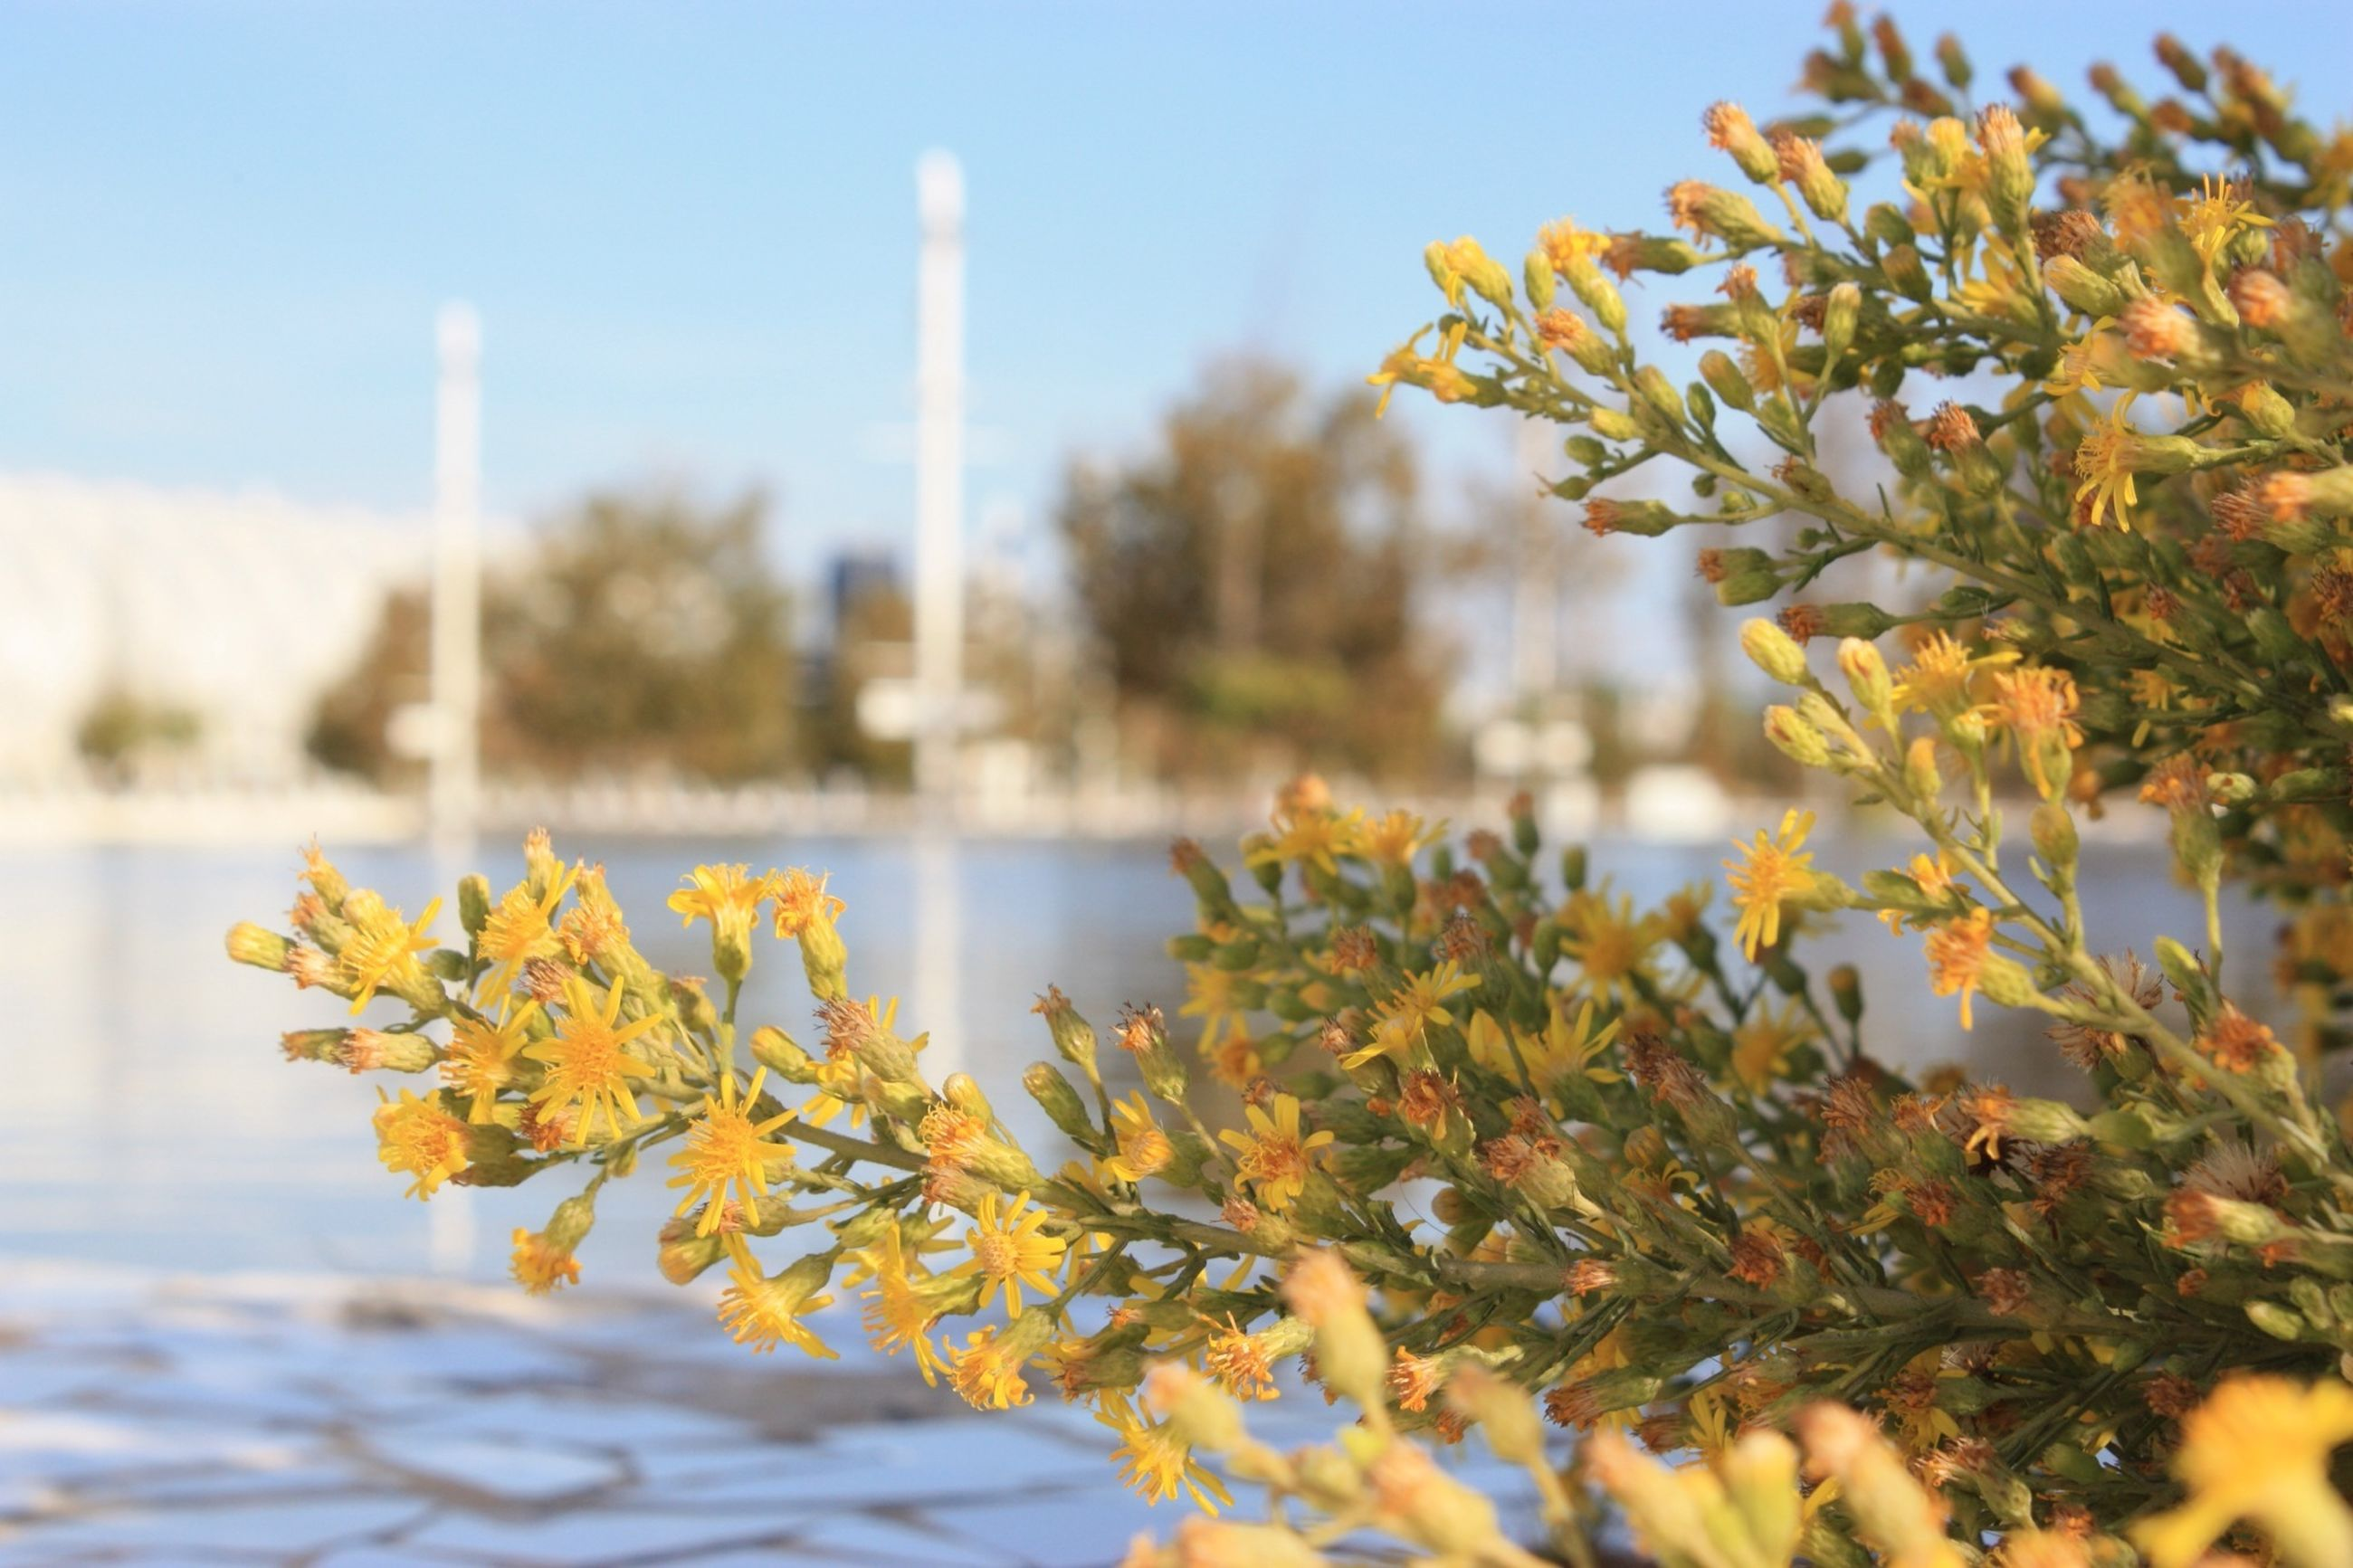 growth, focus on foreground, clear sky, flower, yellow, nature, selective focus, freshness, plant, close-up, leaf, tree, beauty in nature, sky, day, fragility, outdoors, sunlight, growing, no people